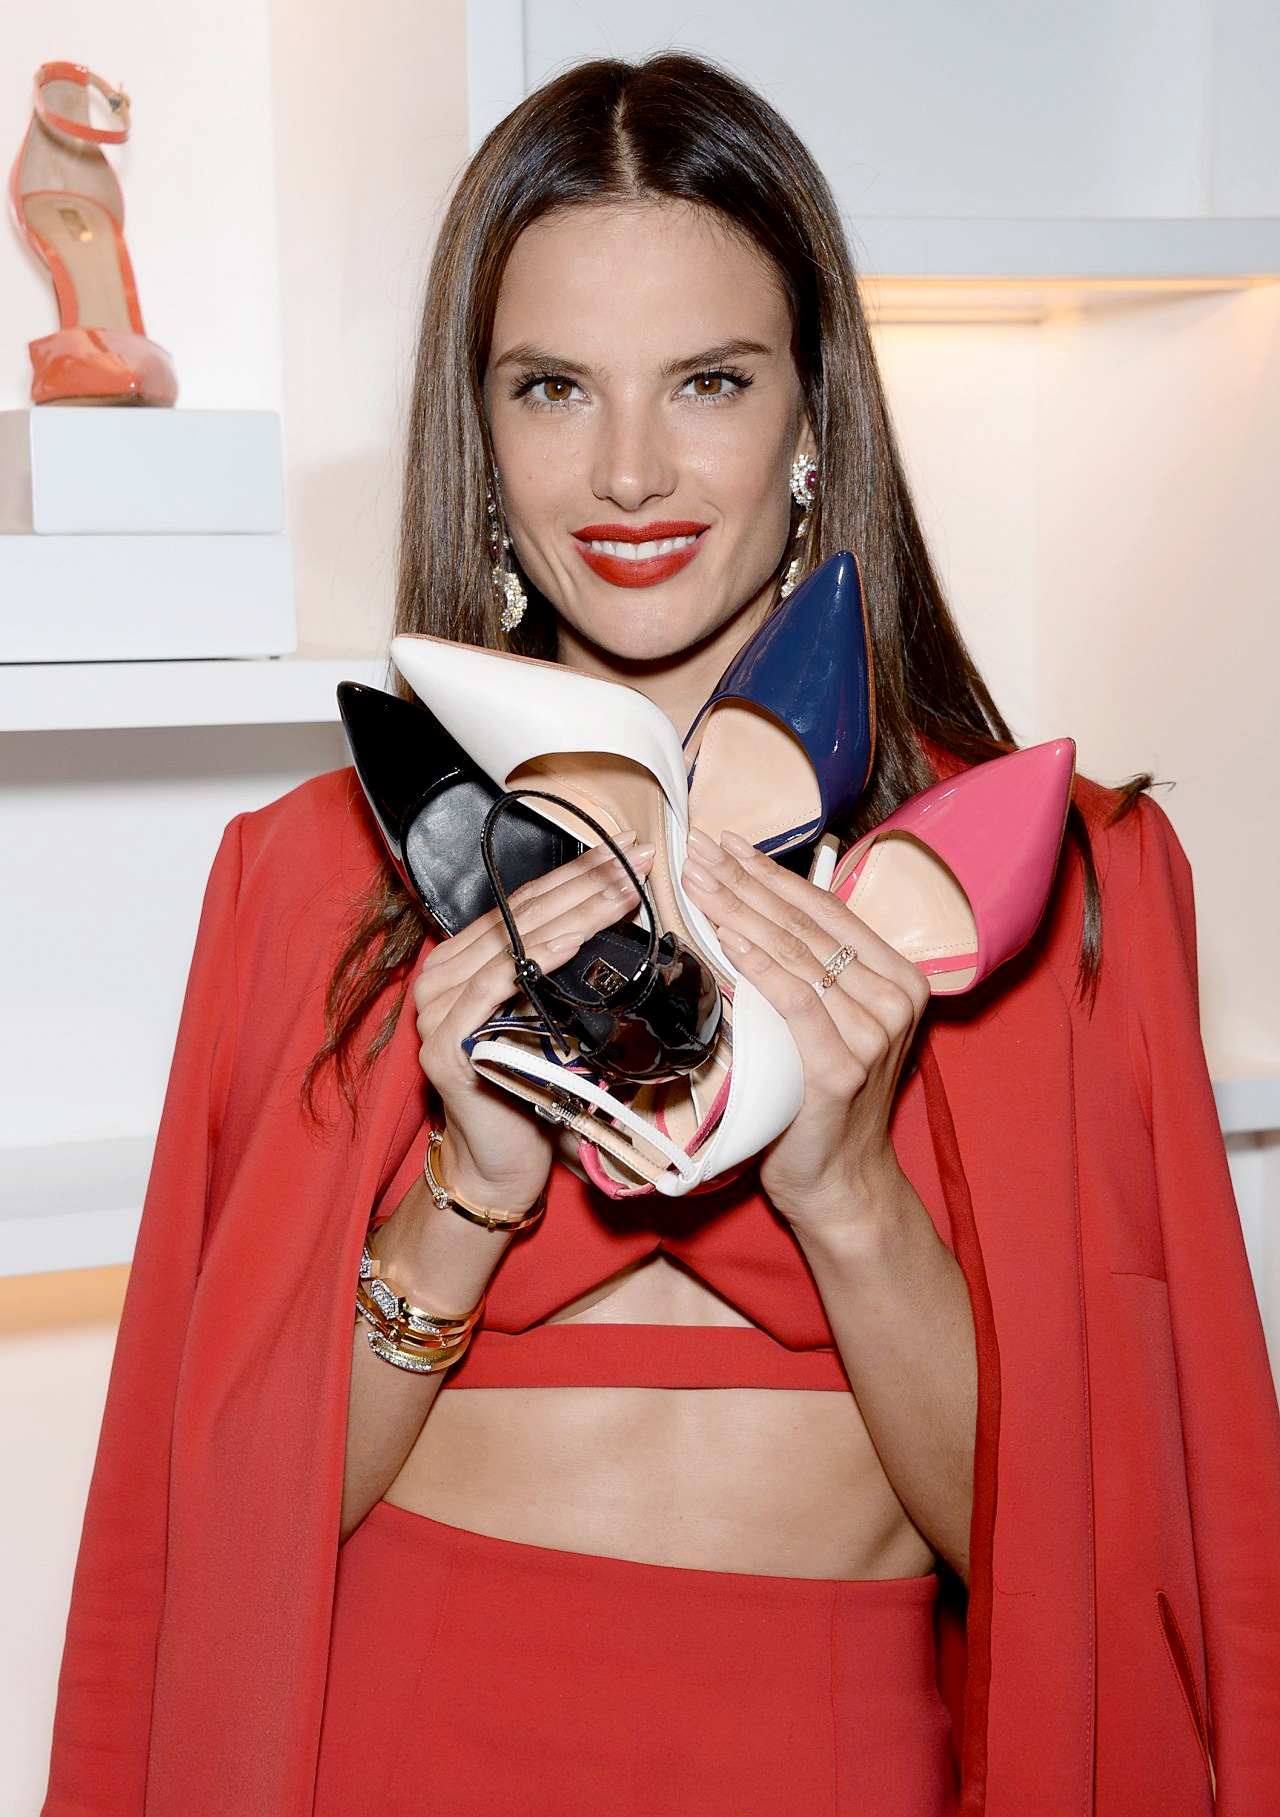 alessandra-ambrosio-schutz-summer-2014-collection-launch-nyc-april-2014_1.